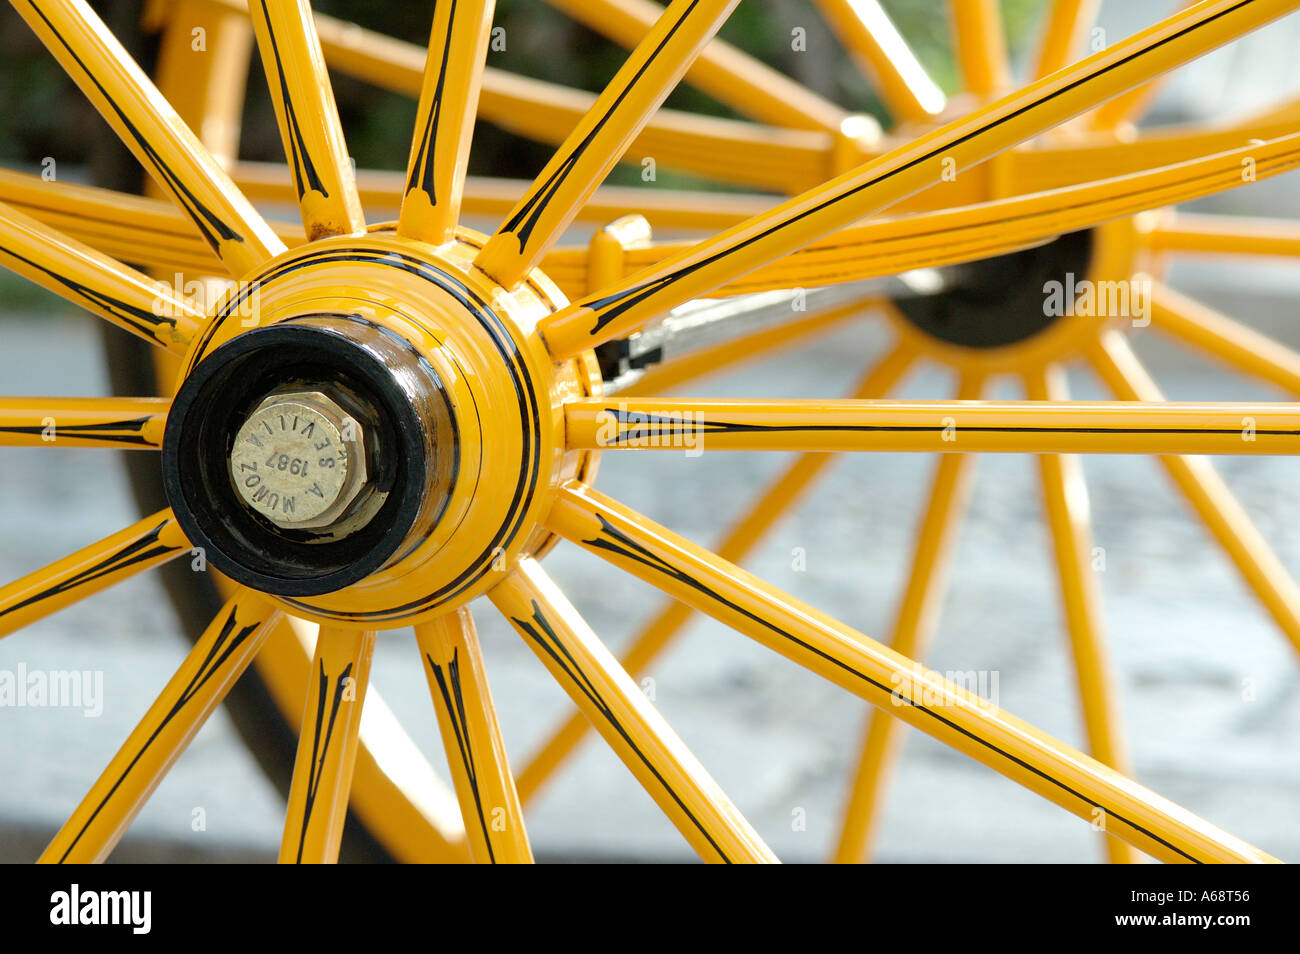 Horse carriage outside the Cathedral Seville Spain wheel detail - Stock Image